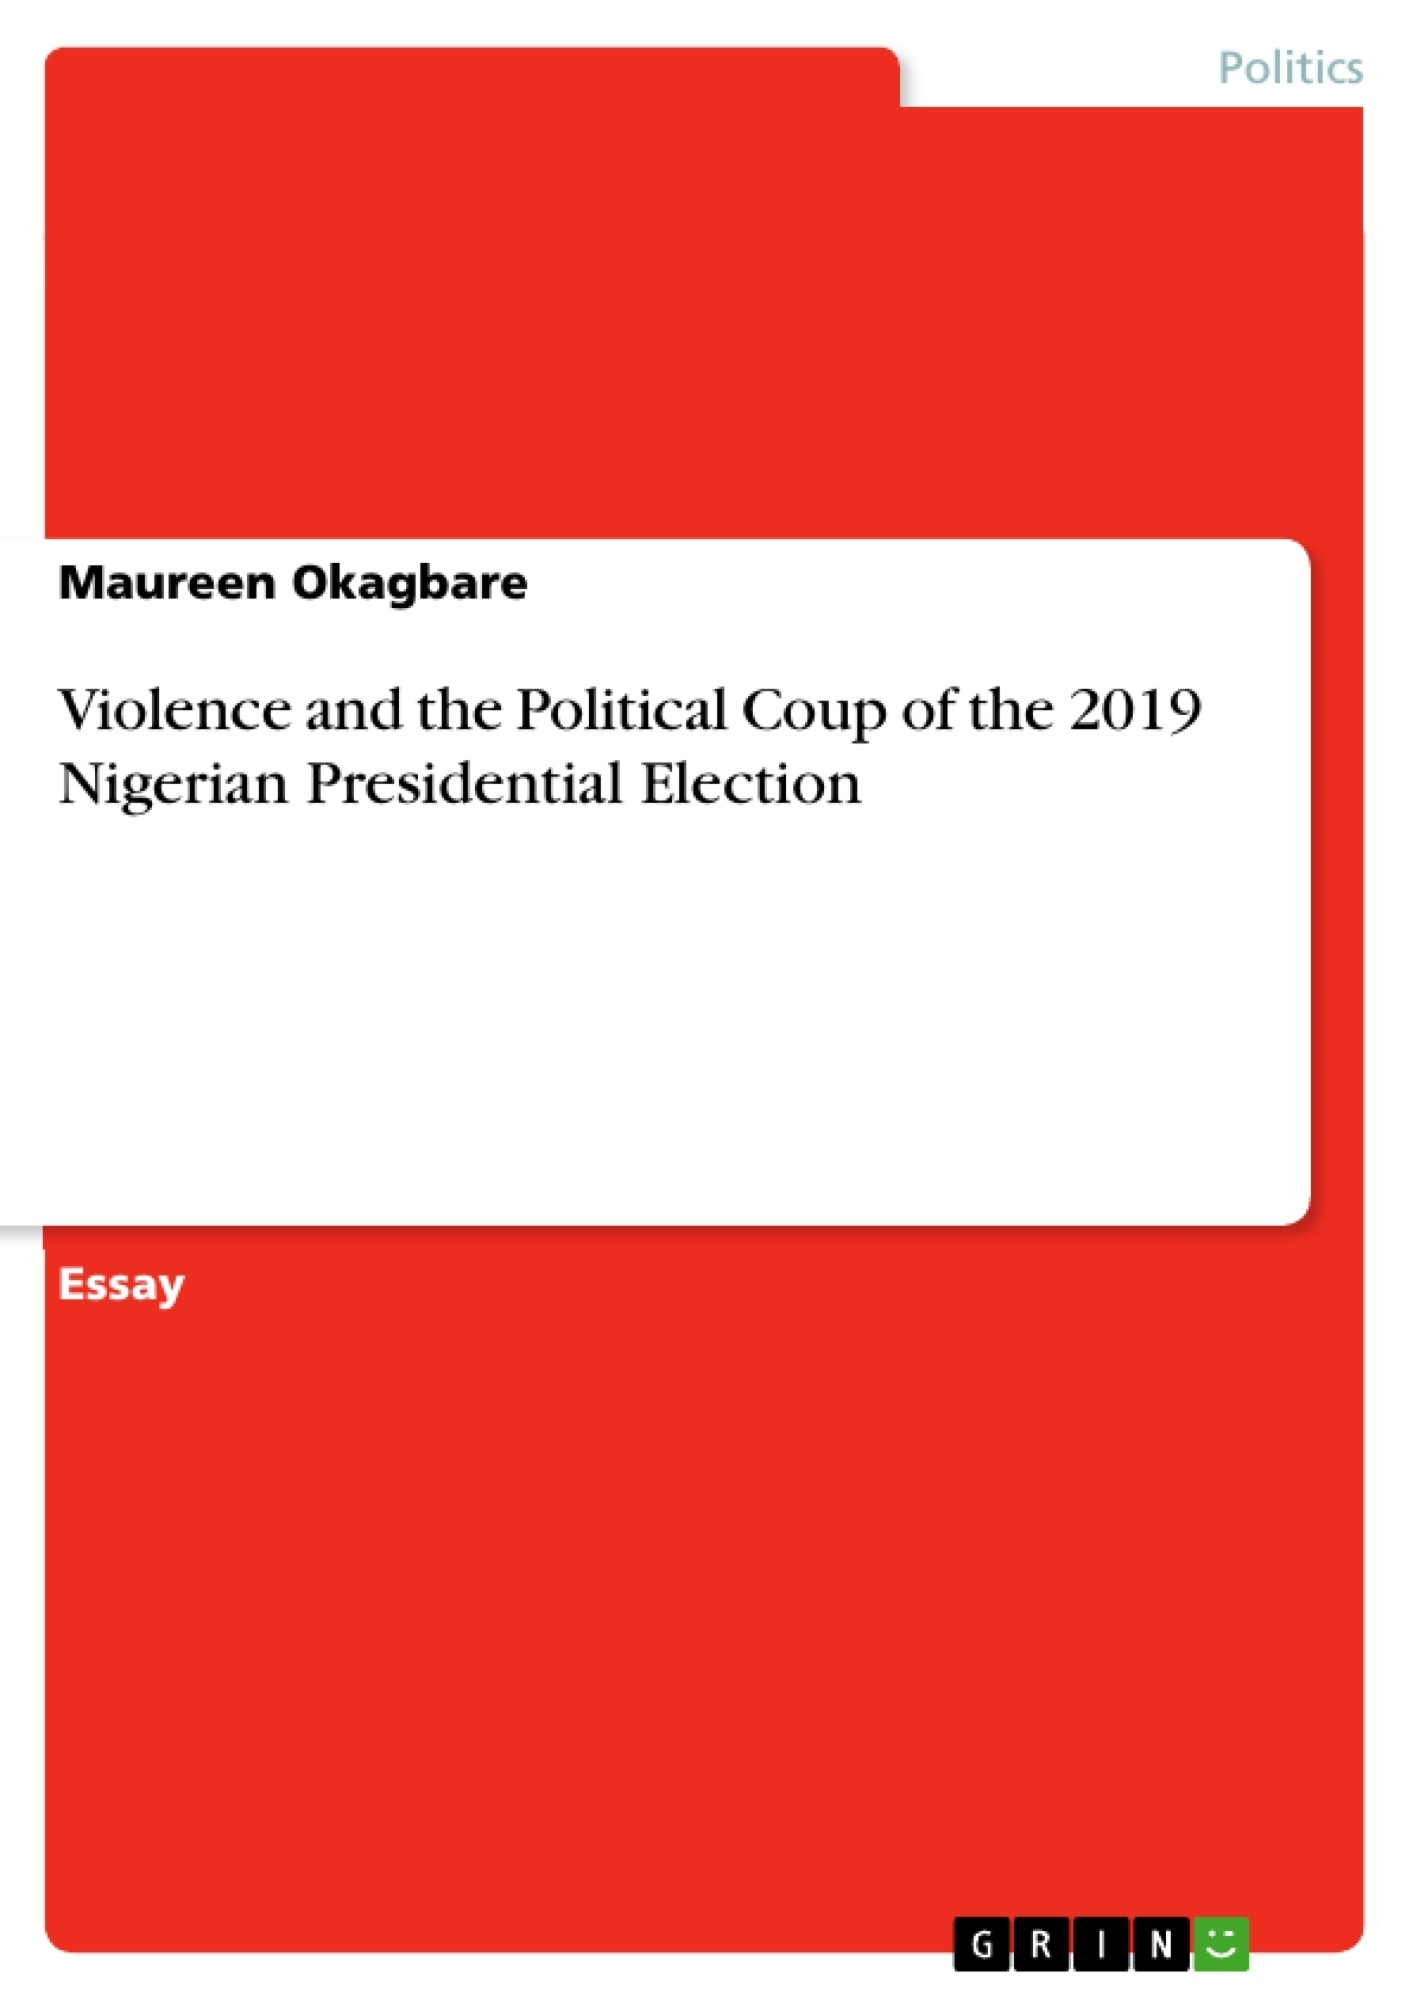 Title: Violence and the Political Coup of the 2019 Nigerian Presidential Election